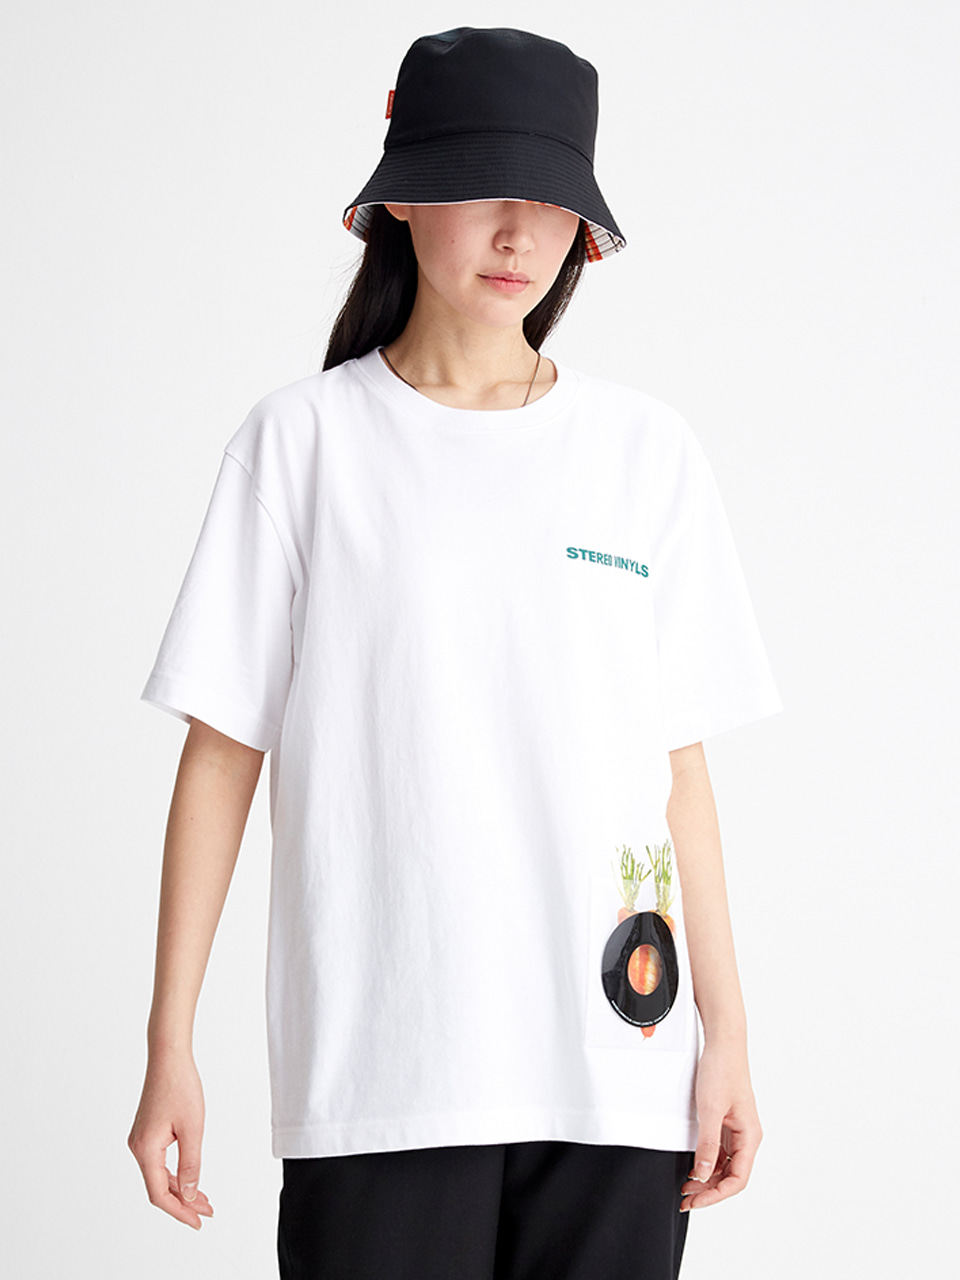 [SS20 SV X Carrots] Pvc Pocket T-Shirts(White) 스테레오 바이널즈[SS20 SV X Carrots] Pvc Pocket T-Shirts(White)